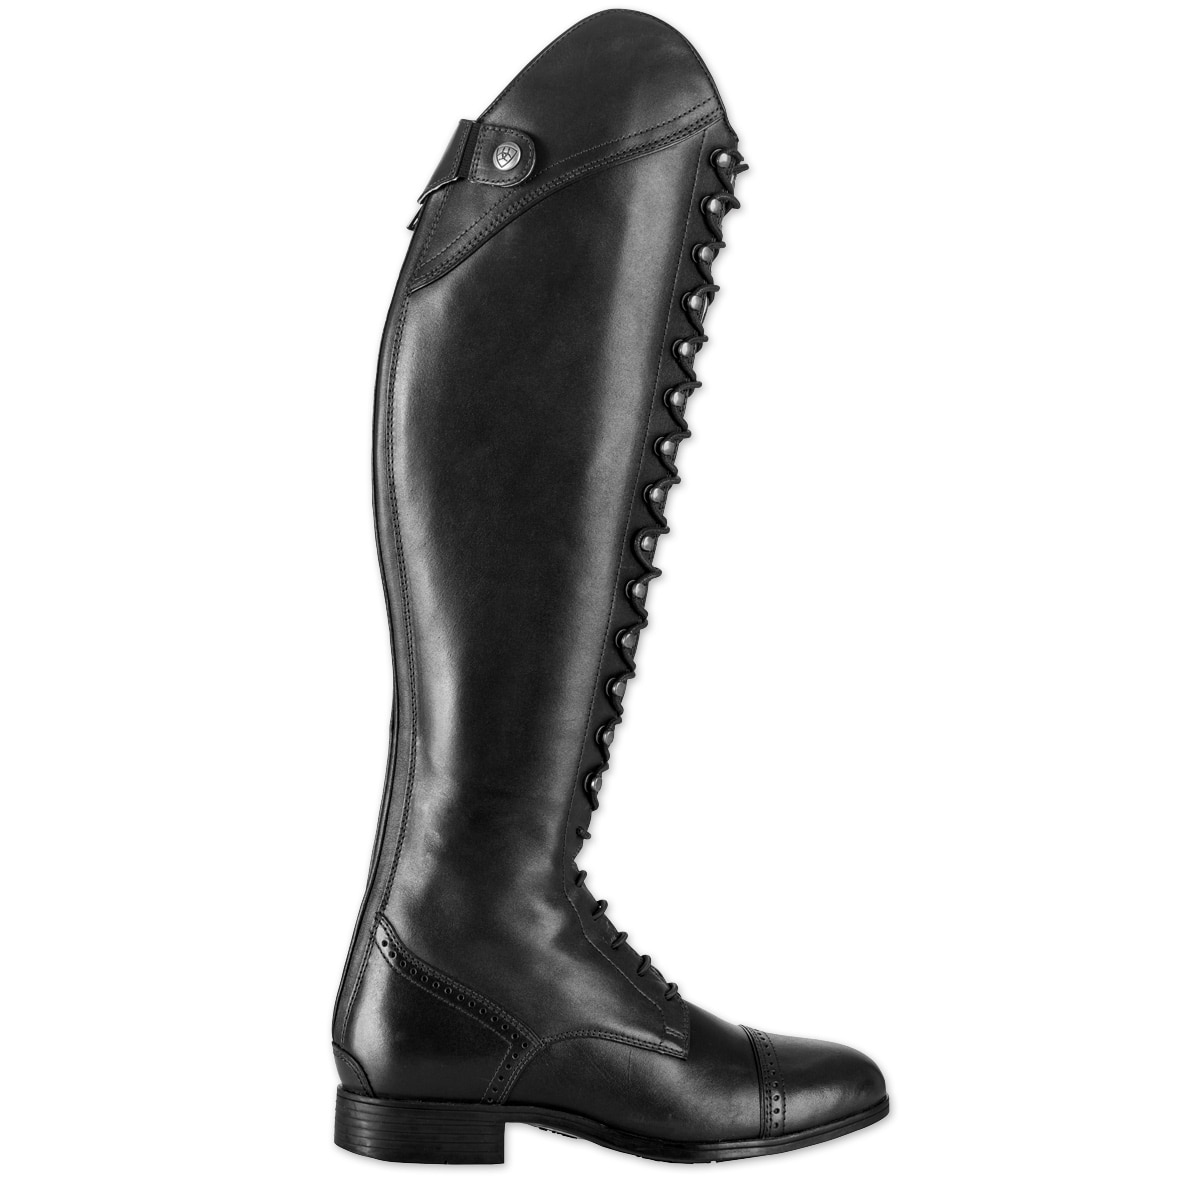 e40ef2f4acc Ariat Capriole Lace Up Dressage Boot - Black